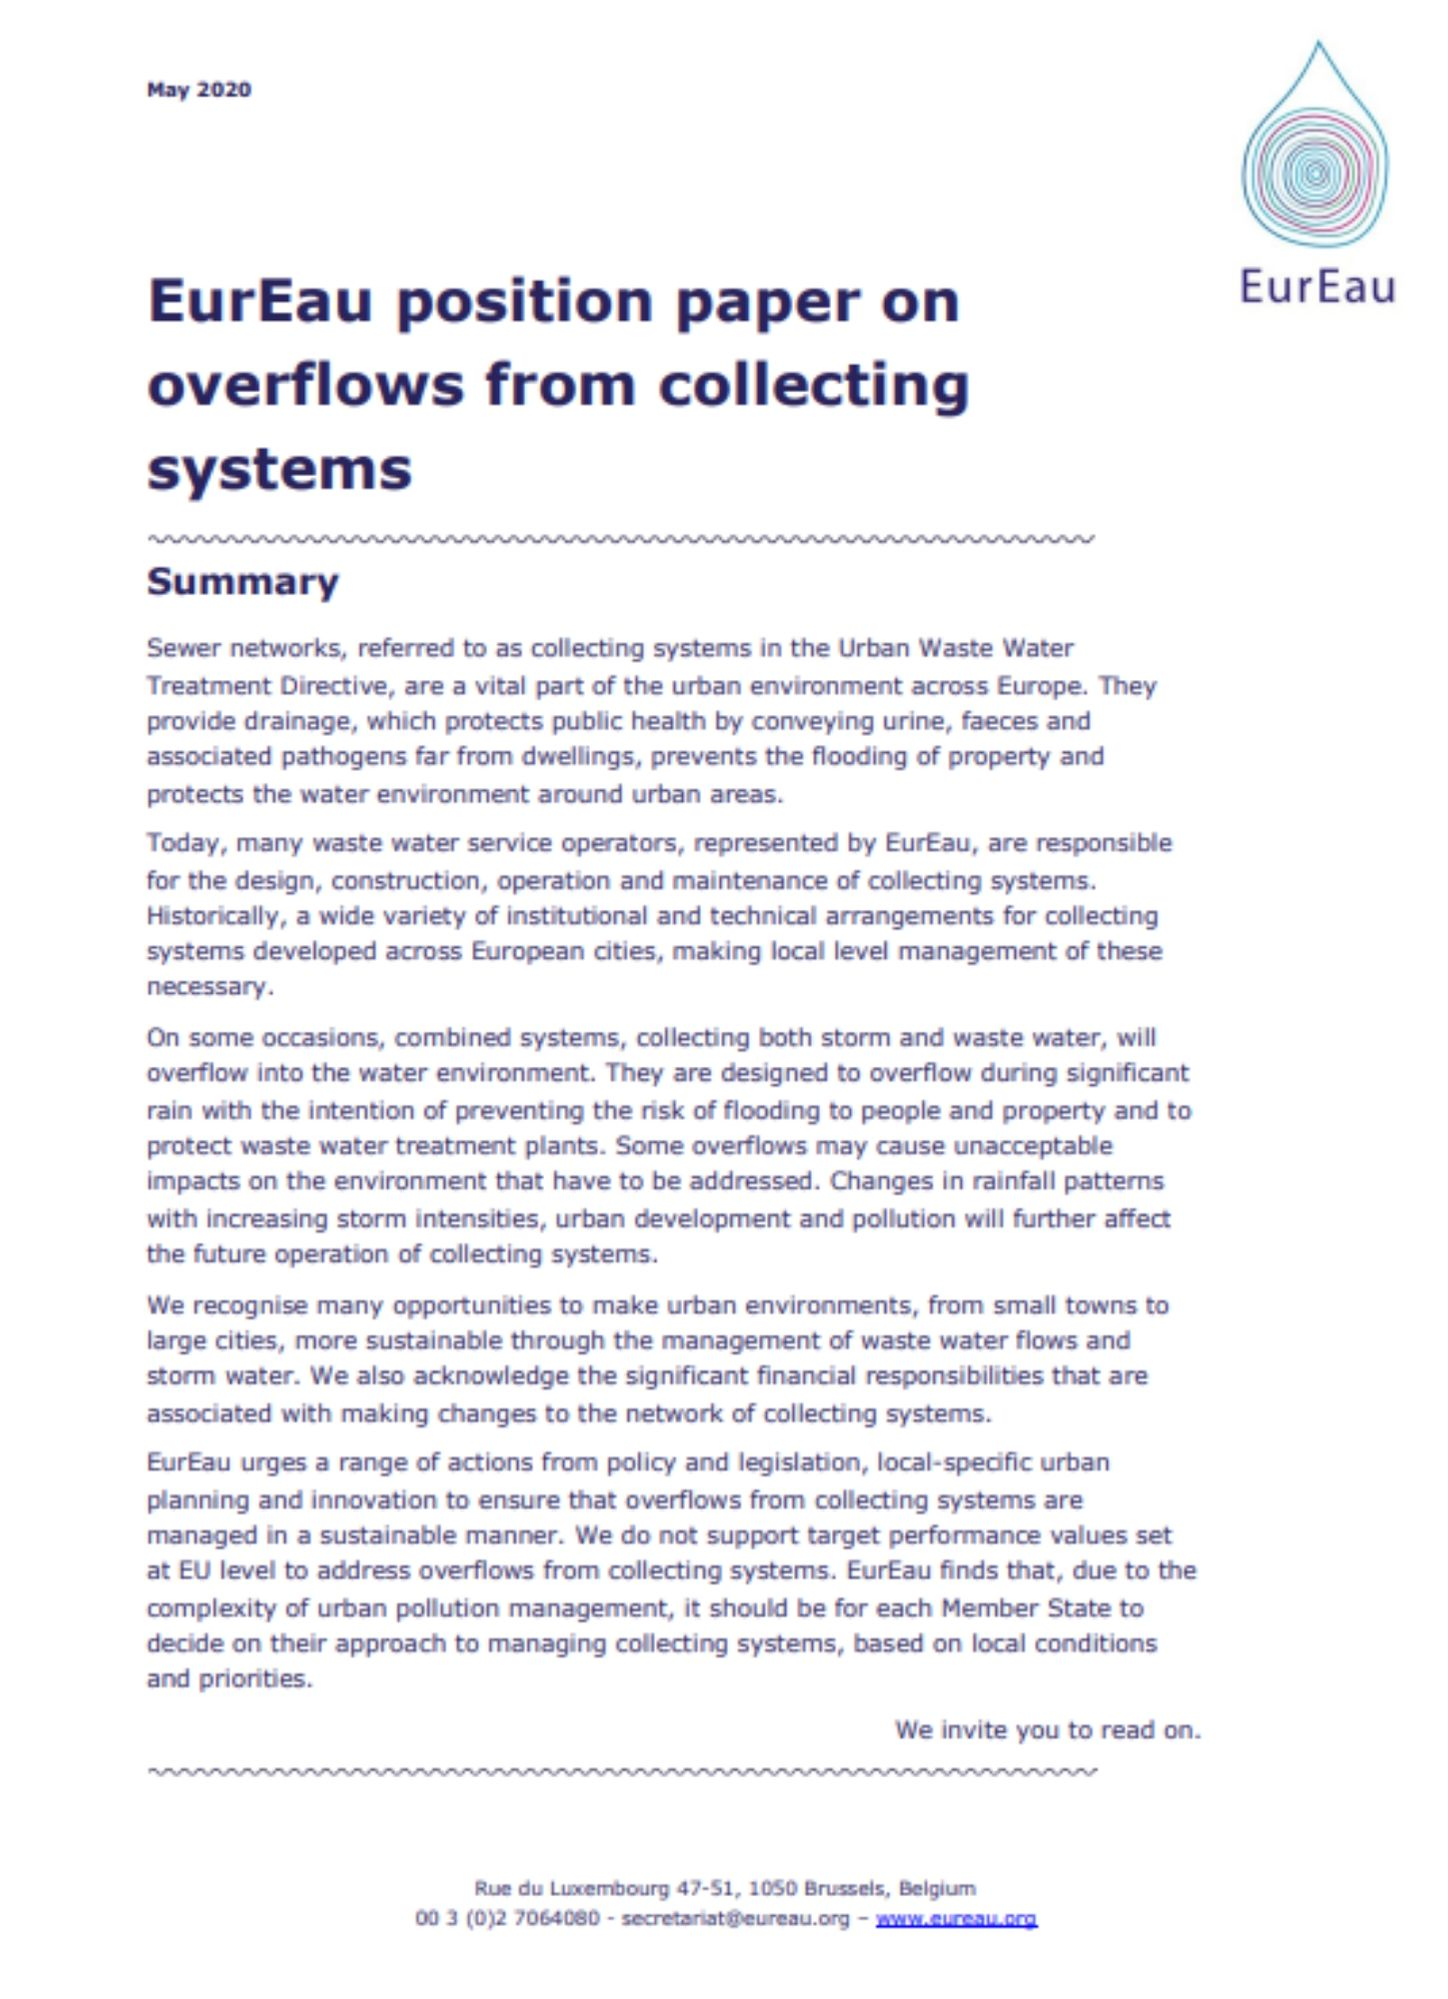 Position paper on overflows from collecting systems